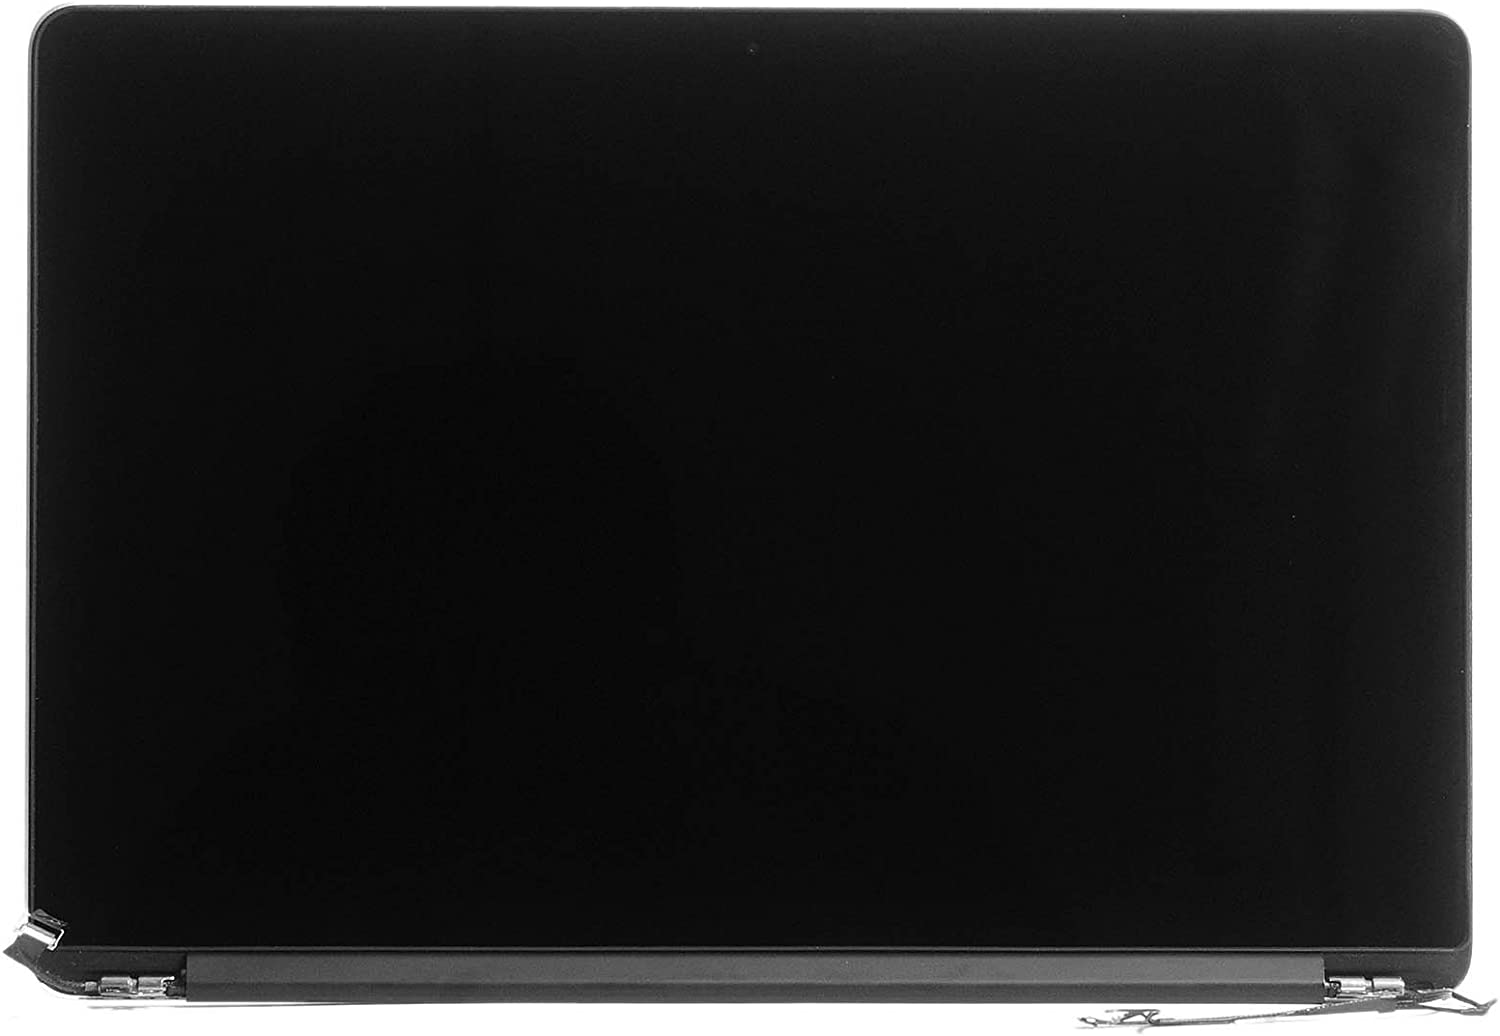 "LCD LED Display Screen Assembly for Apple MacBook Pro Retina Display 15"" Model A1398. (Mid 2012 Early 2013)"